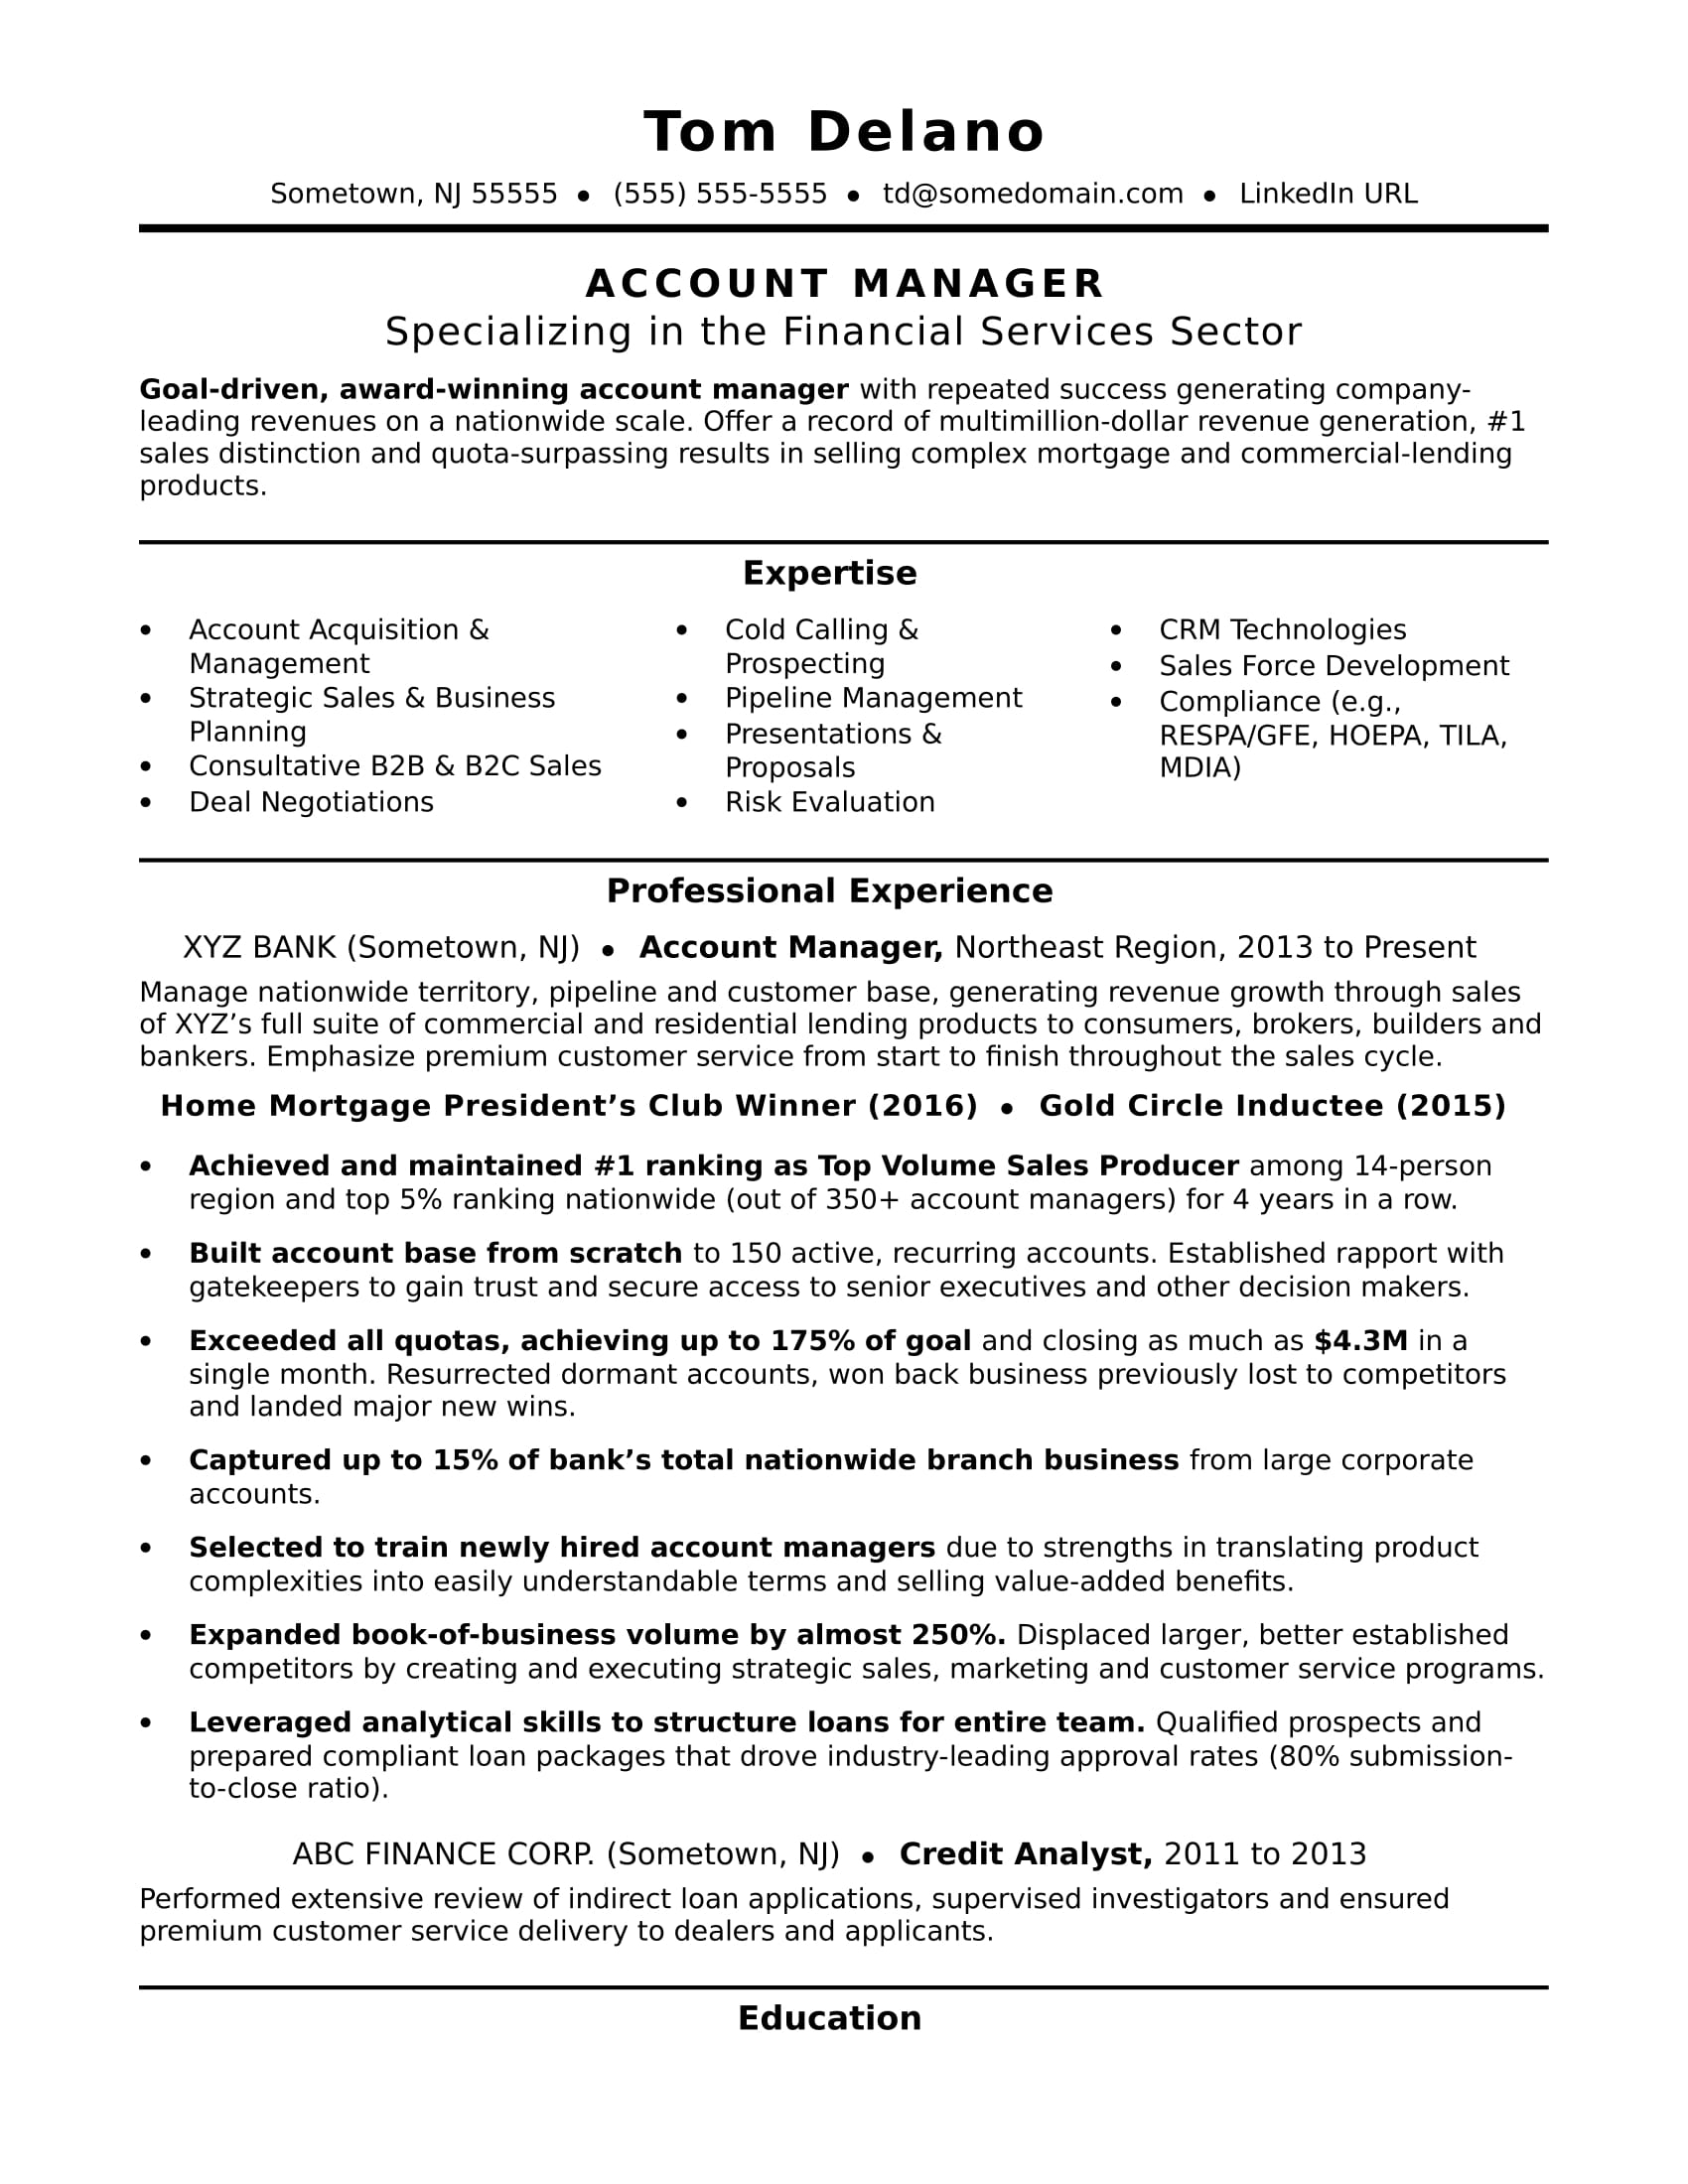 resume Senior Management Resume Templates account manager resume sample monster com sample